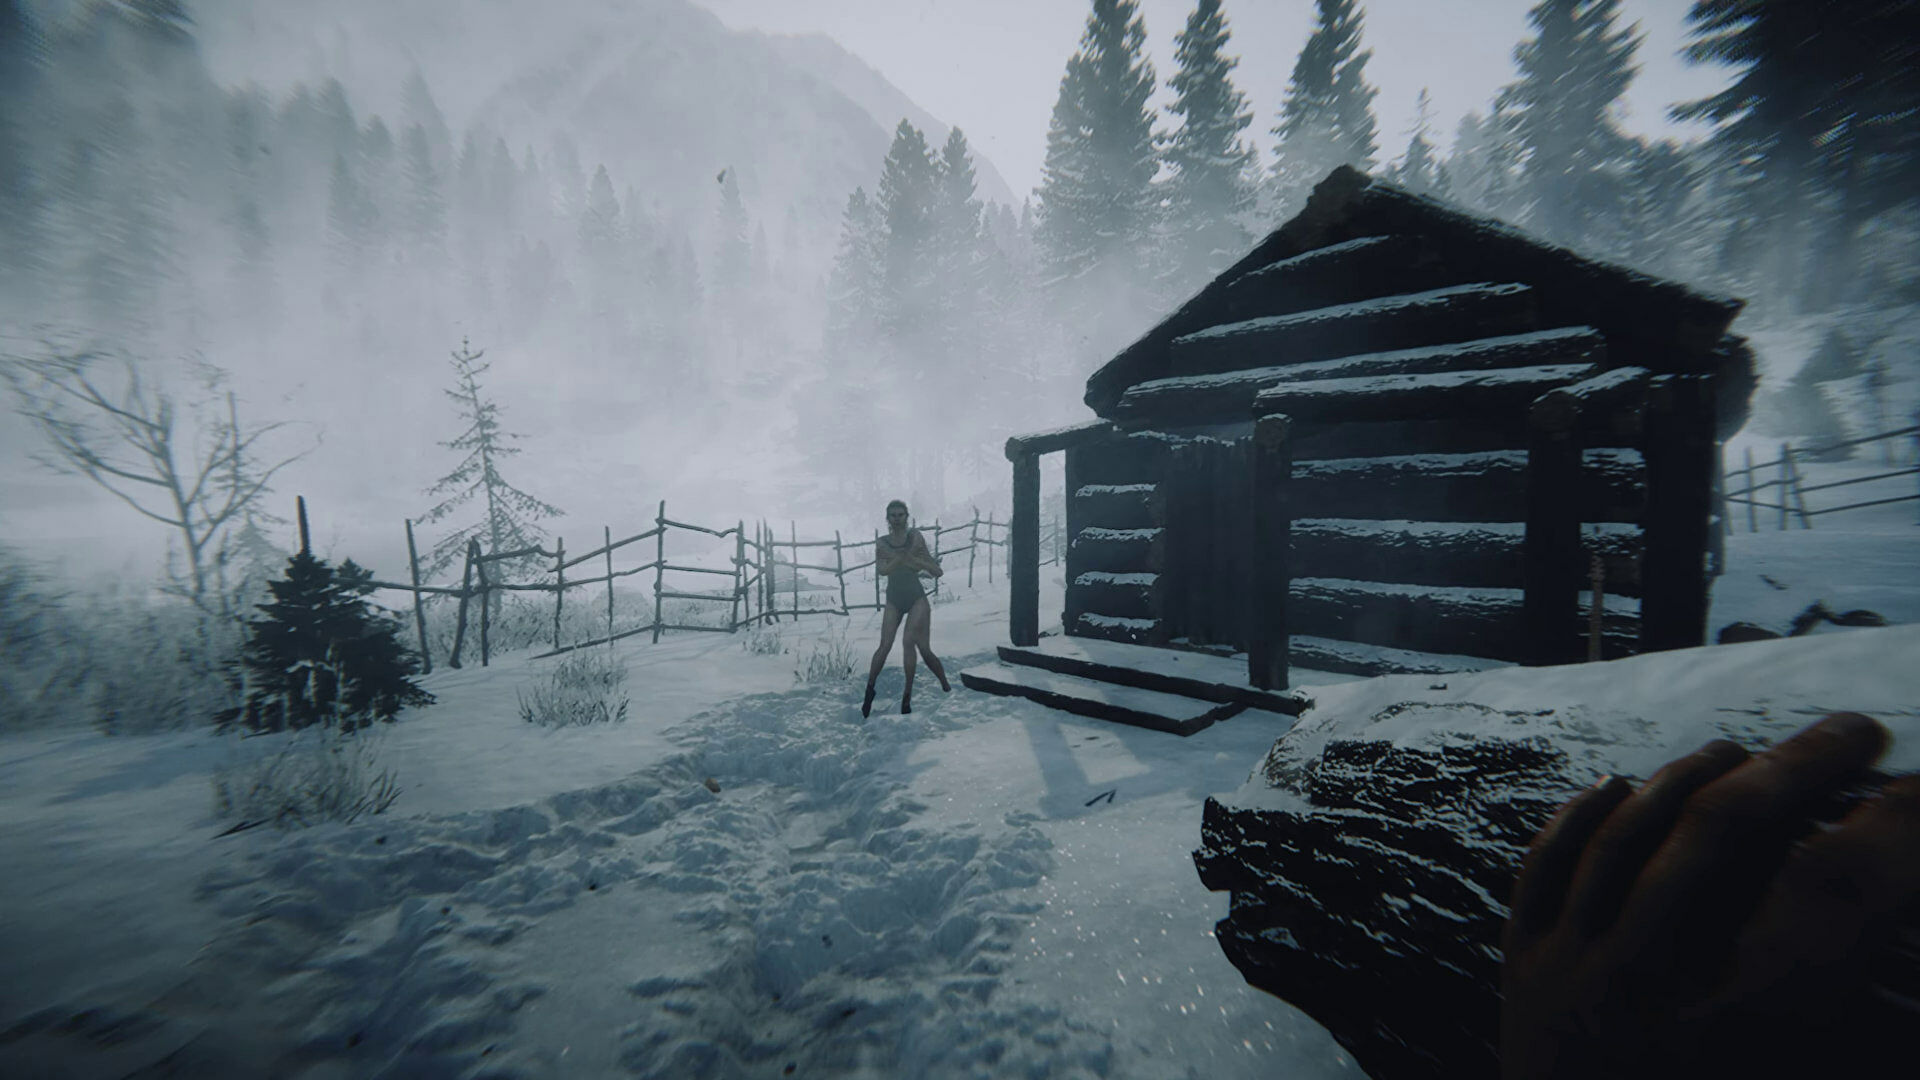 With 11 ski resorts, eight wilderness areas, 10 mountain peaks over 14,000 feet and 2,500 miles of trails, this forest is a place where you can press play on adventure and inspiration! The Forest Sequel Coming In 2021 Rock Paper Shotgun